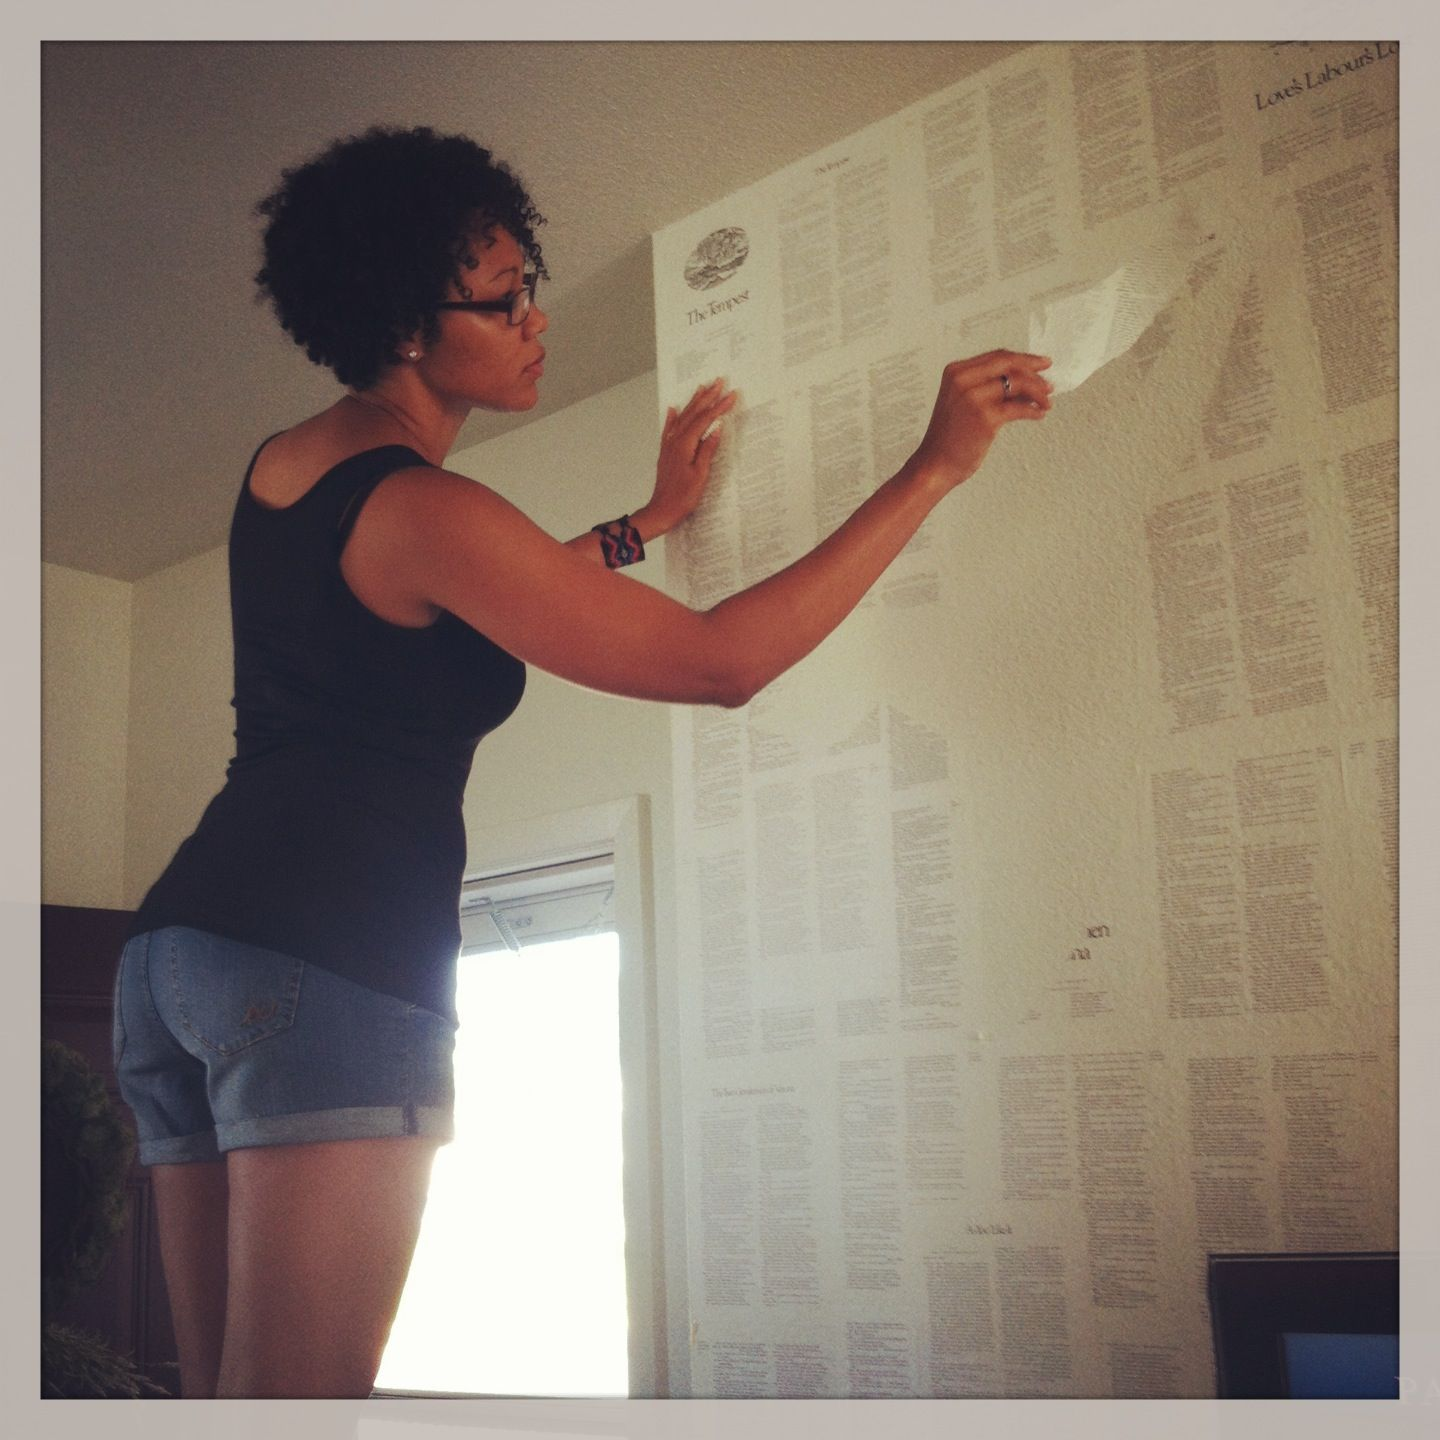 Office supplies news reviews and more make diy projects and ideas - How To Make Newspaper Wallpaper Google Search